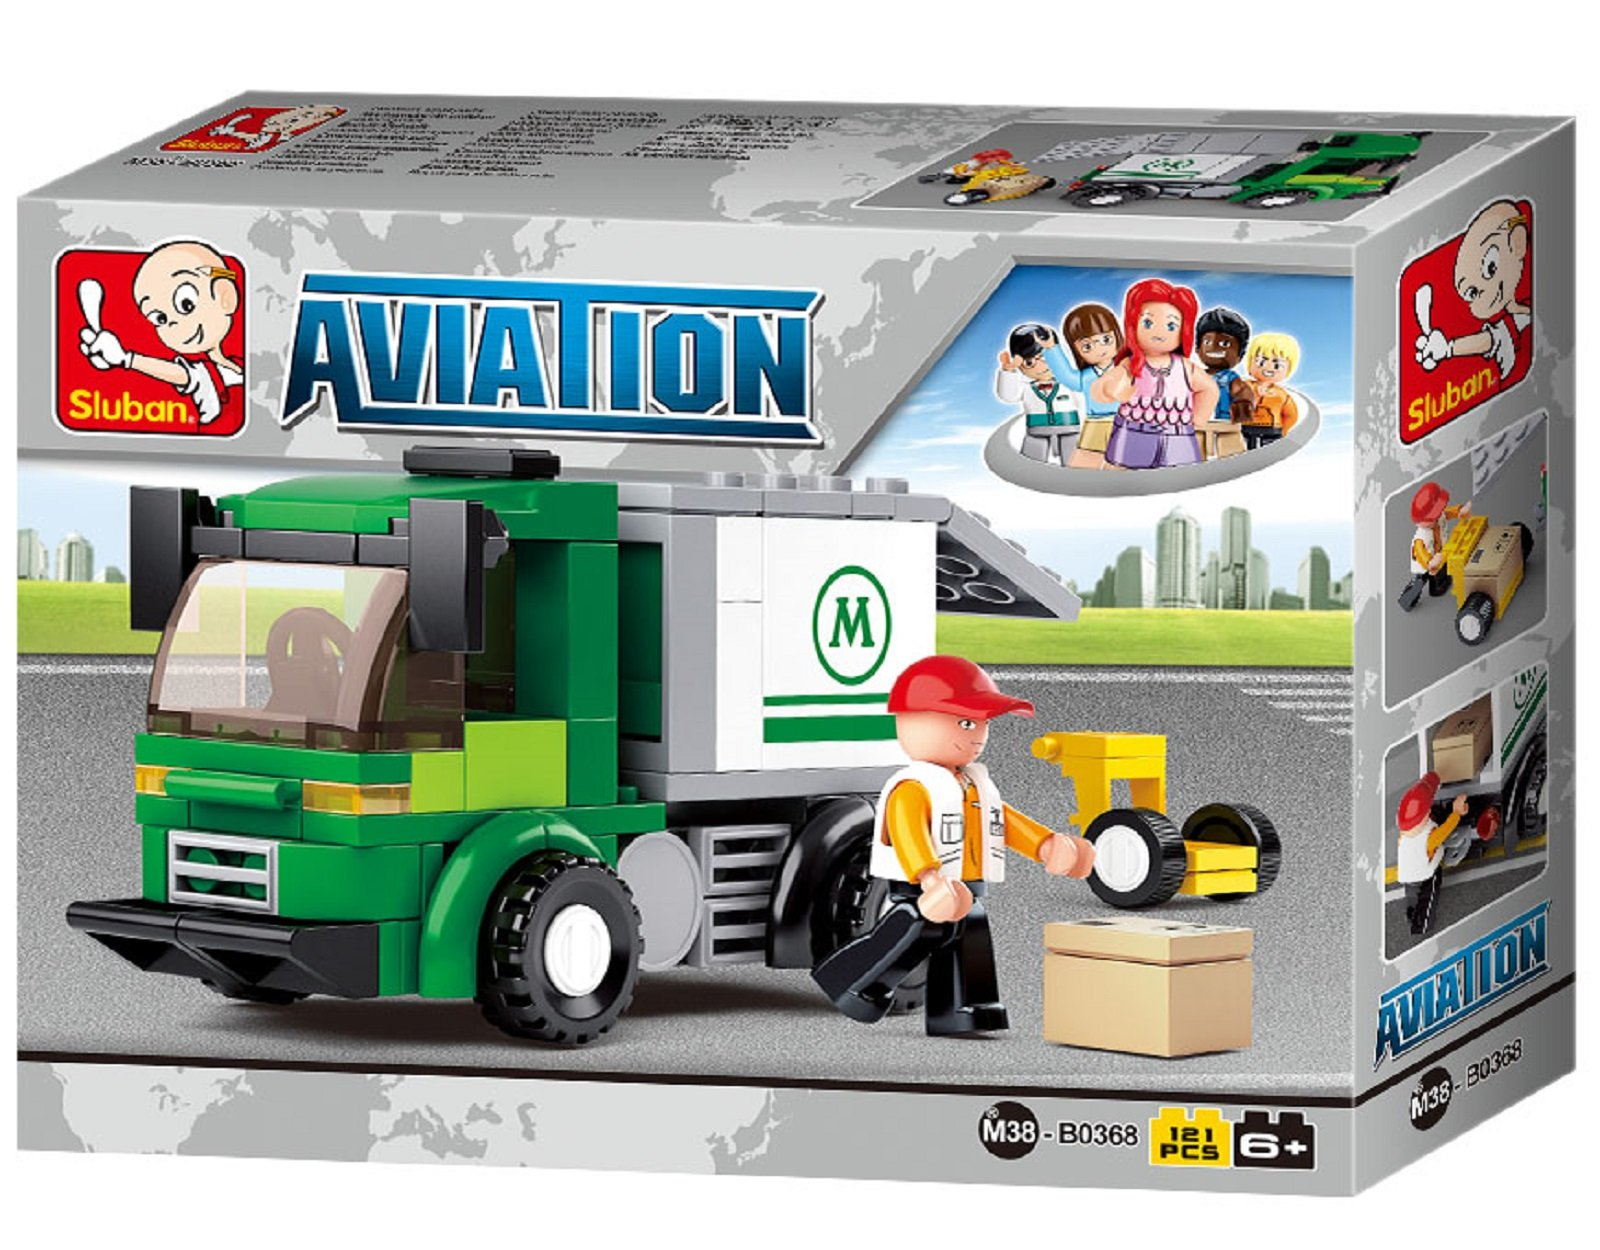 Sluban SlubanM38-B0368 Airport Security Van Building Bricks Set